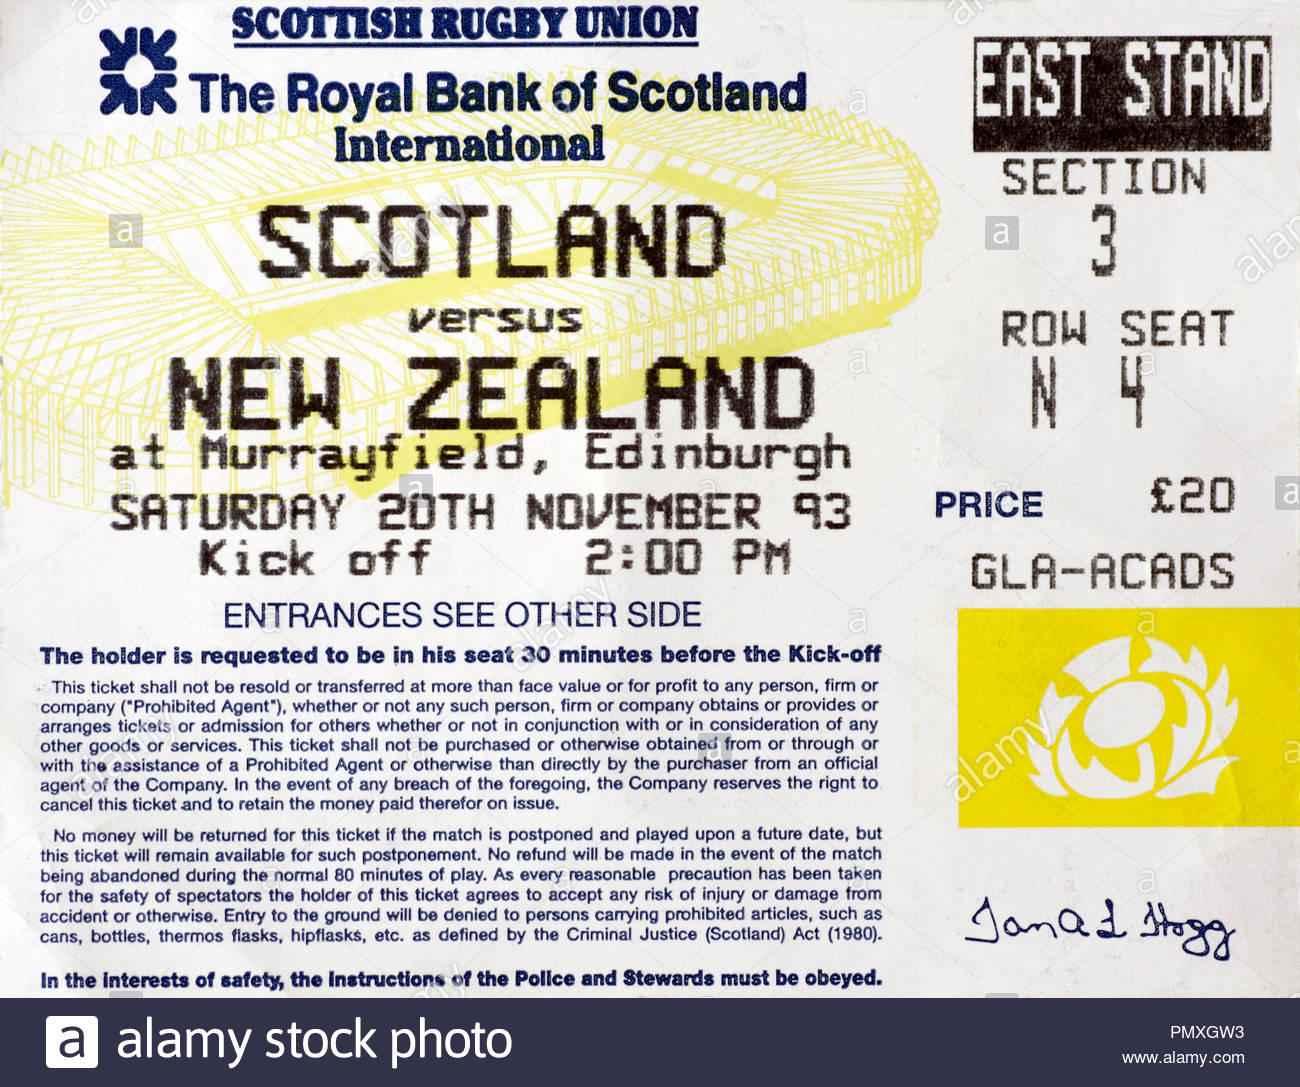 Ticket for Scotland versus New Zealand Rugby Union International at Murrayfield Stadium Edinburgh,  Saturday 20th November 1993. Final score 15-51. - Stock Image